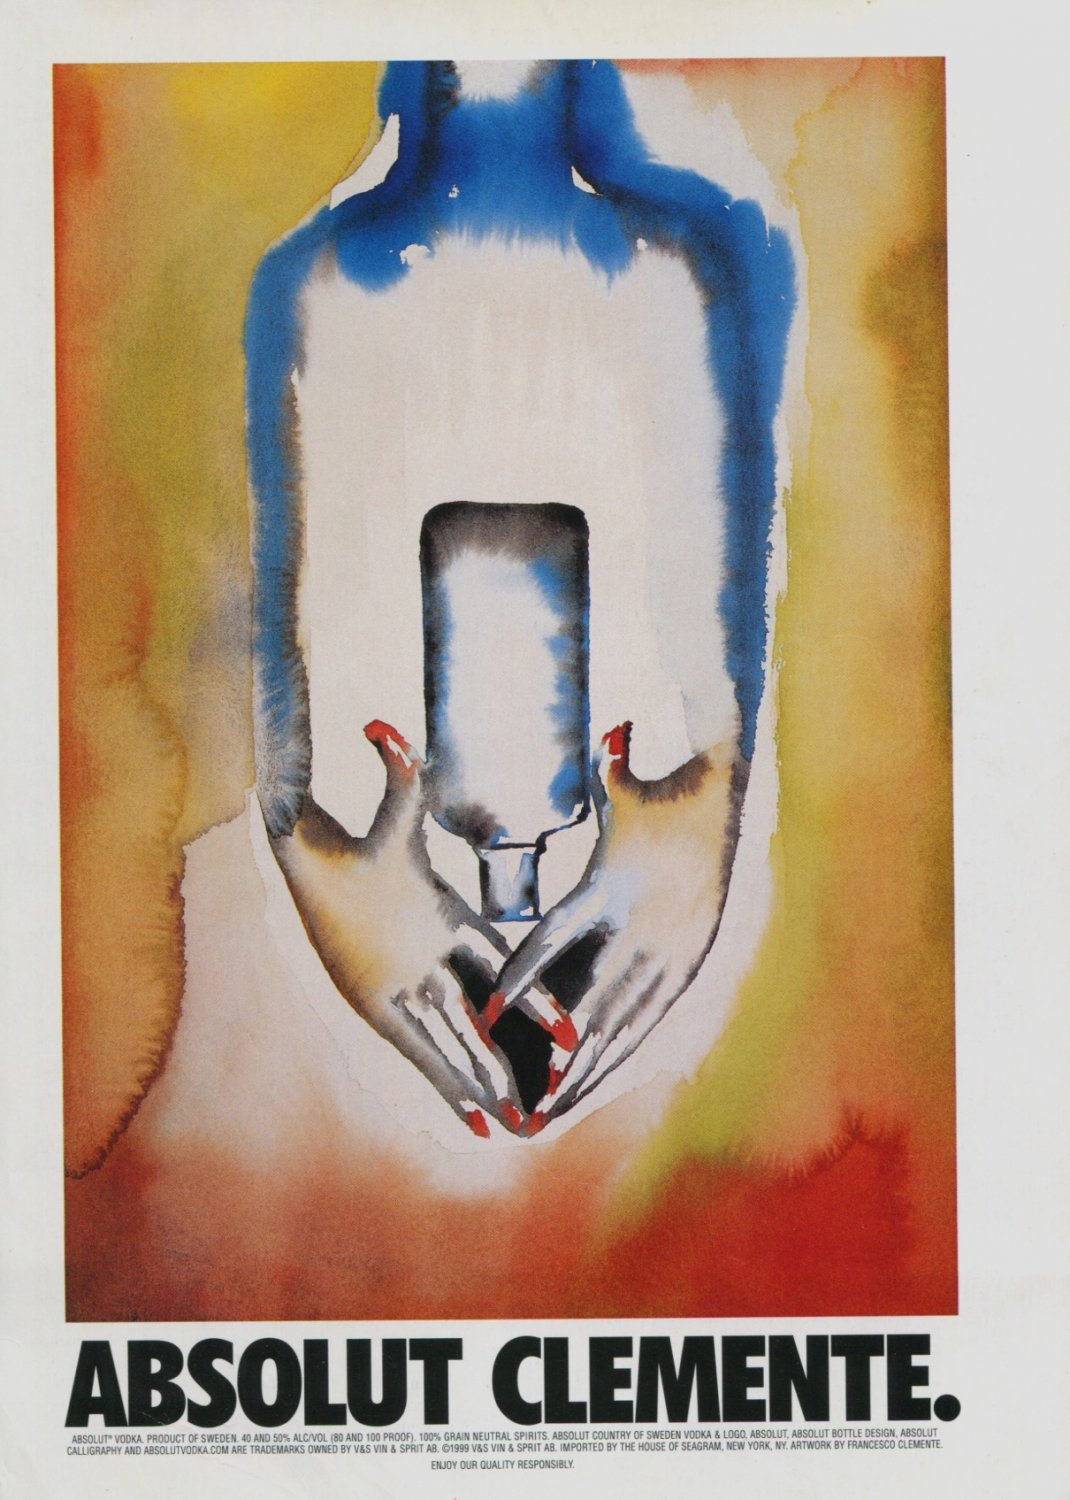 Francesco Clemente Absolut Clemente Art Ad Absolut Vodka Advertisement Advert